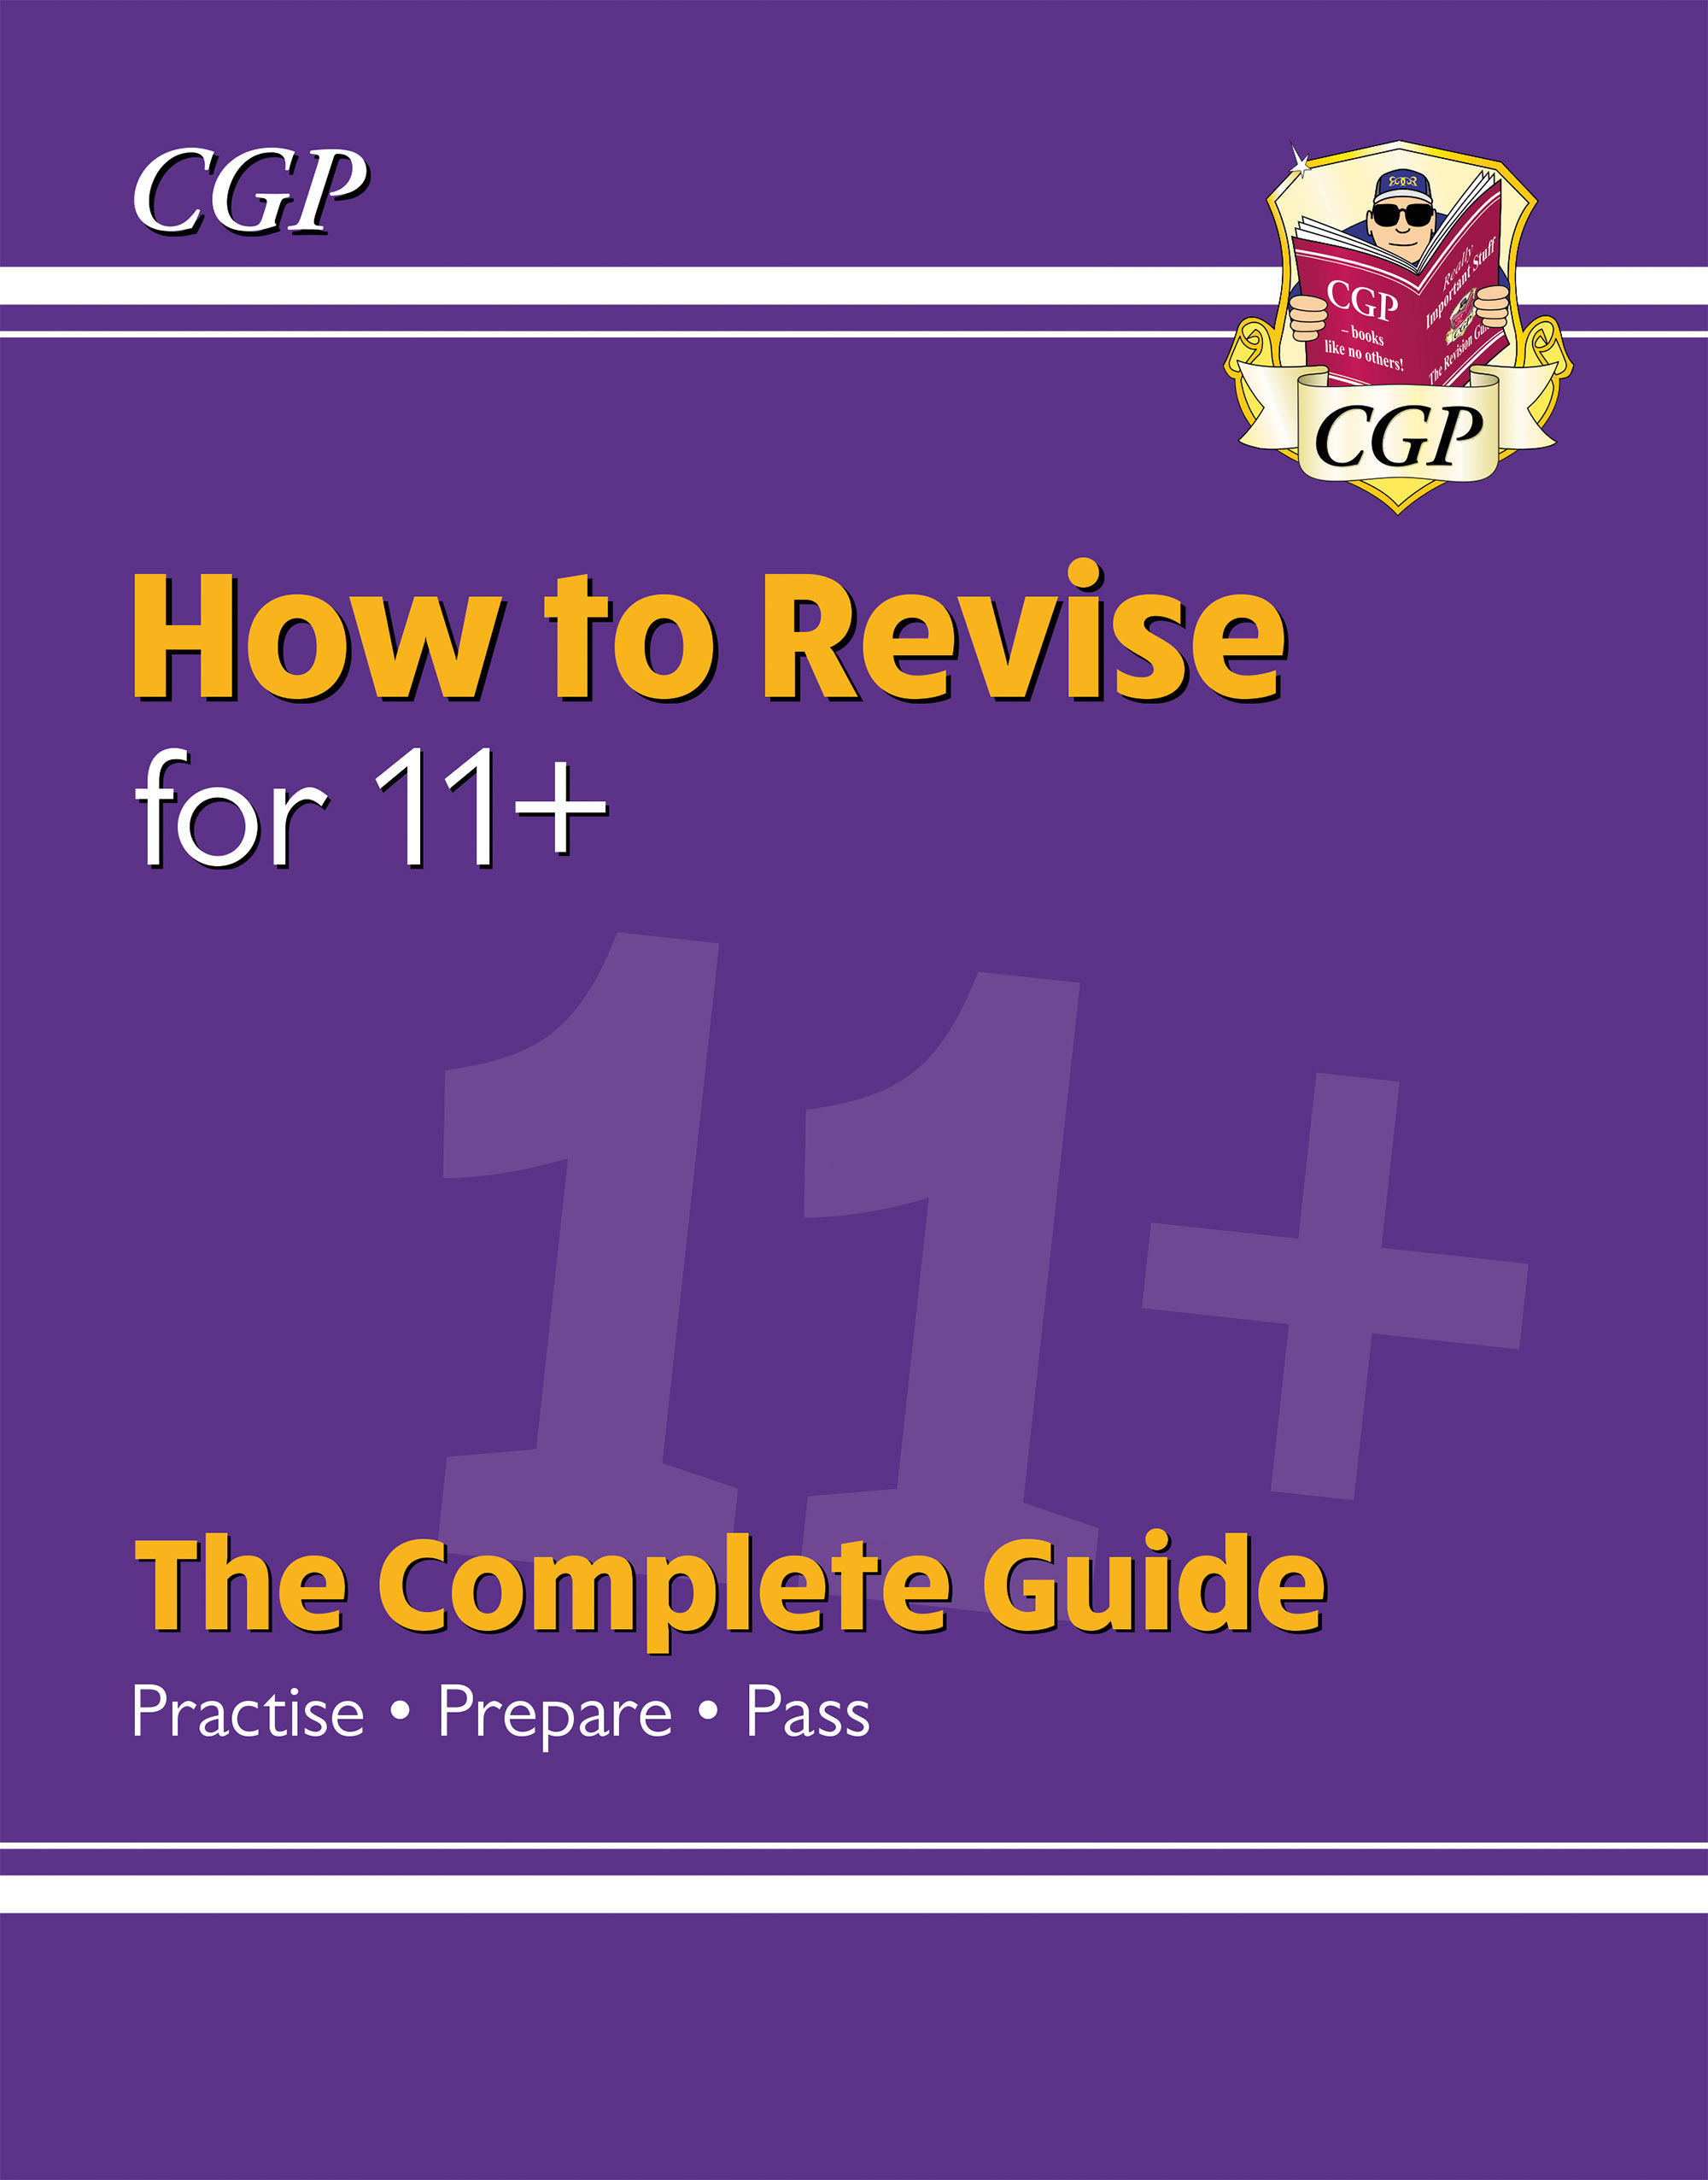 XHRE1DK - New How to Revise for 11+: The Complete Guide